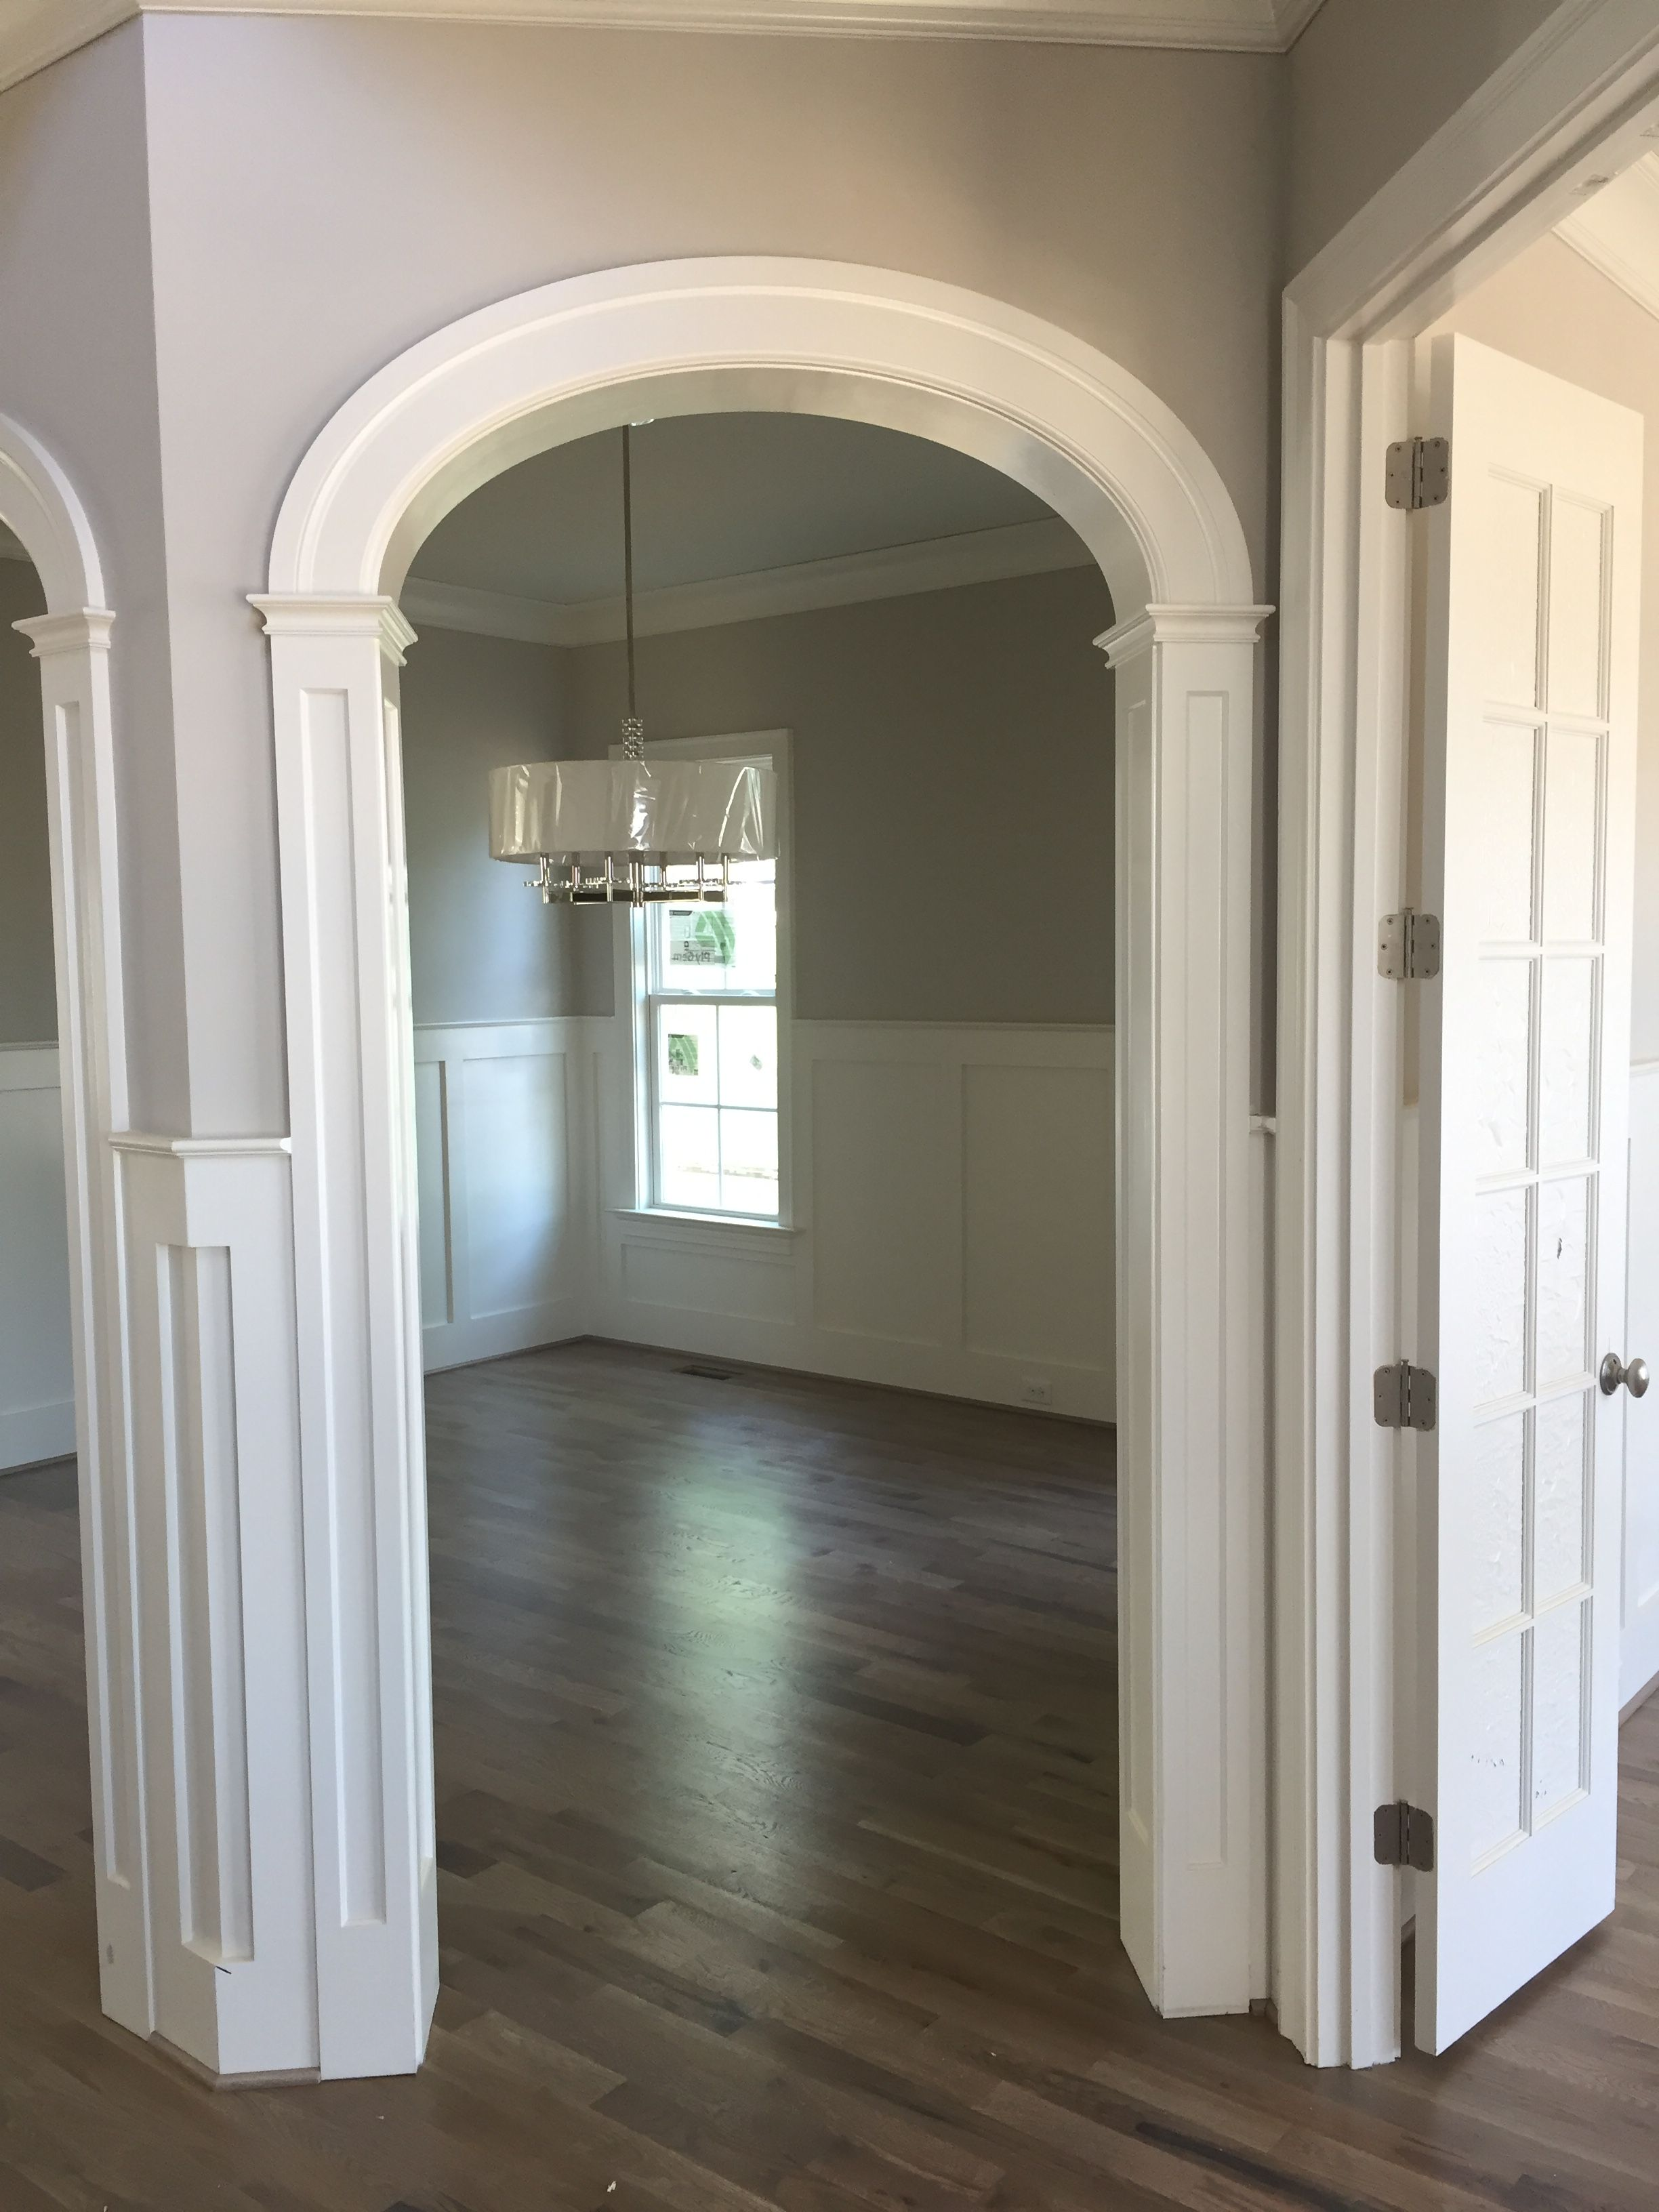 Arched Doorway Trim details. Add trim to arched openings ...